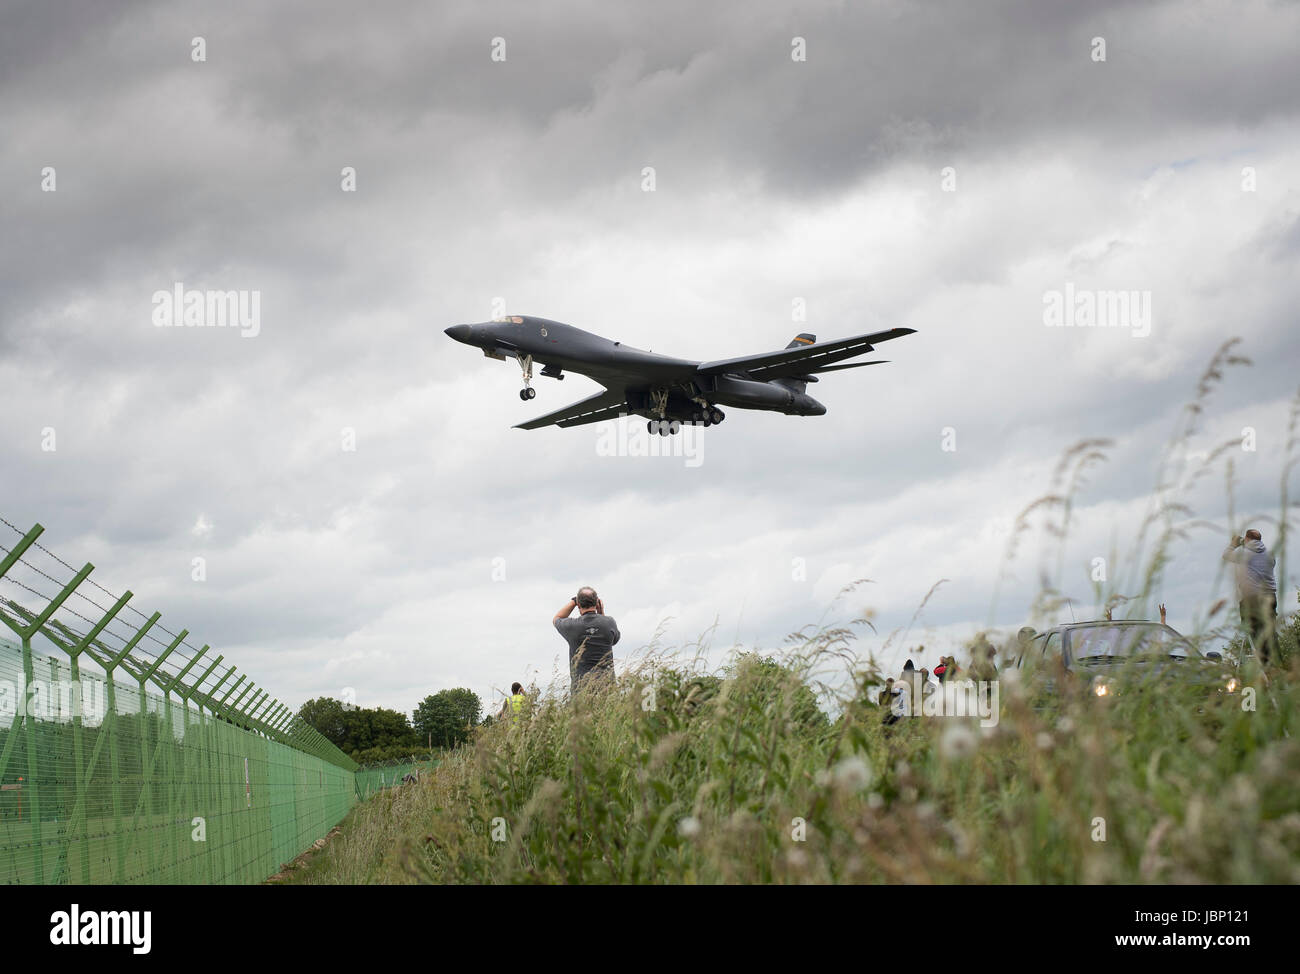 A US Air Force B1 Bomber makes an emergency landing at RAF Fairford, Gloucestershire, 12th June 2017. - Stock Image